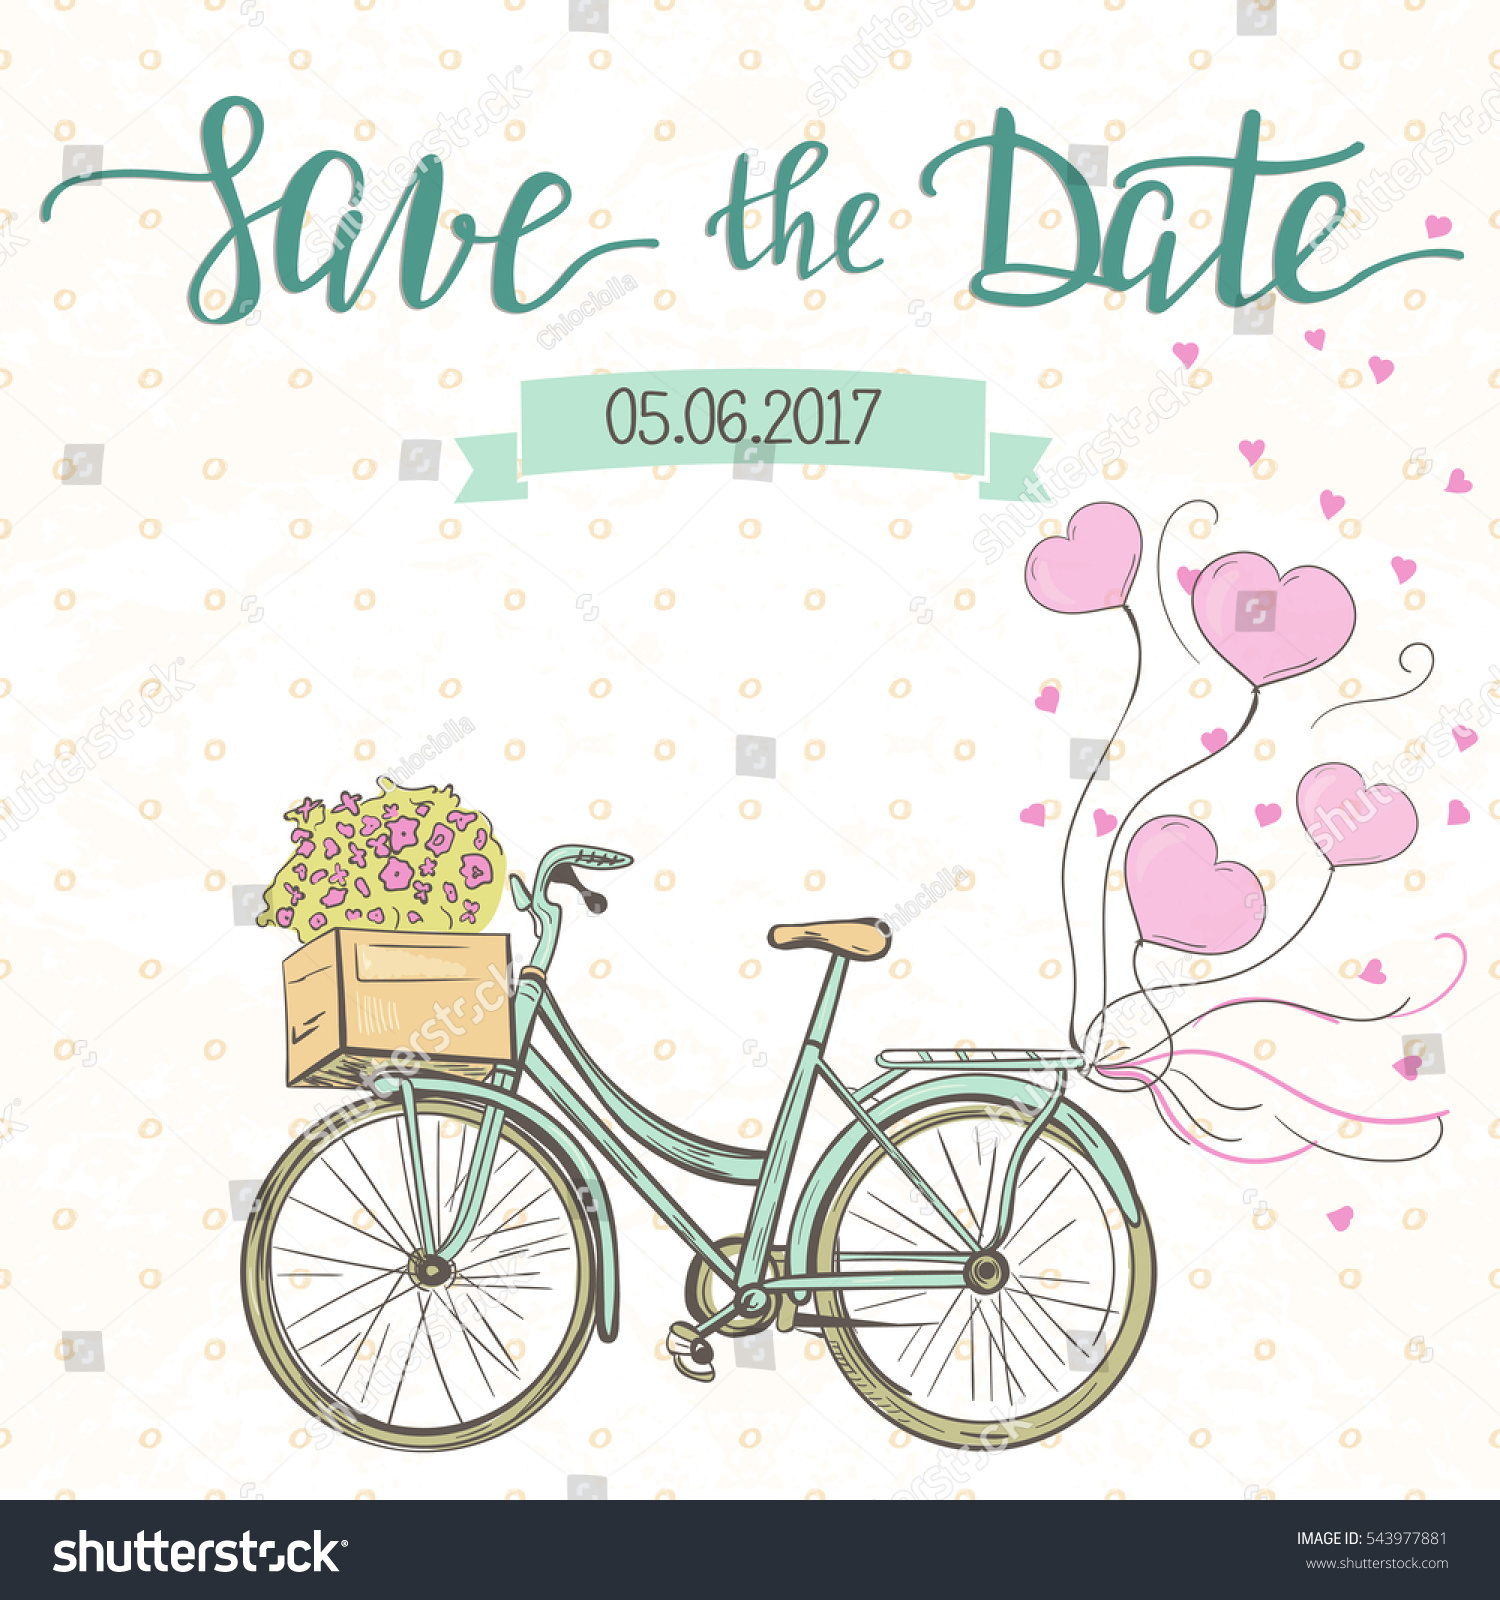 Wedding Invitation Template Cute Bike Balloons Stock Vector (2018 ...